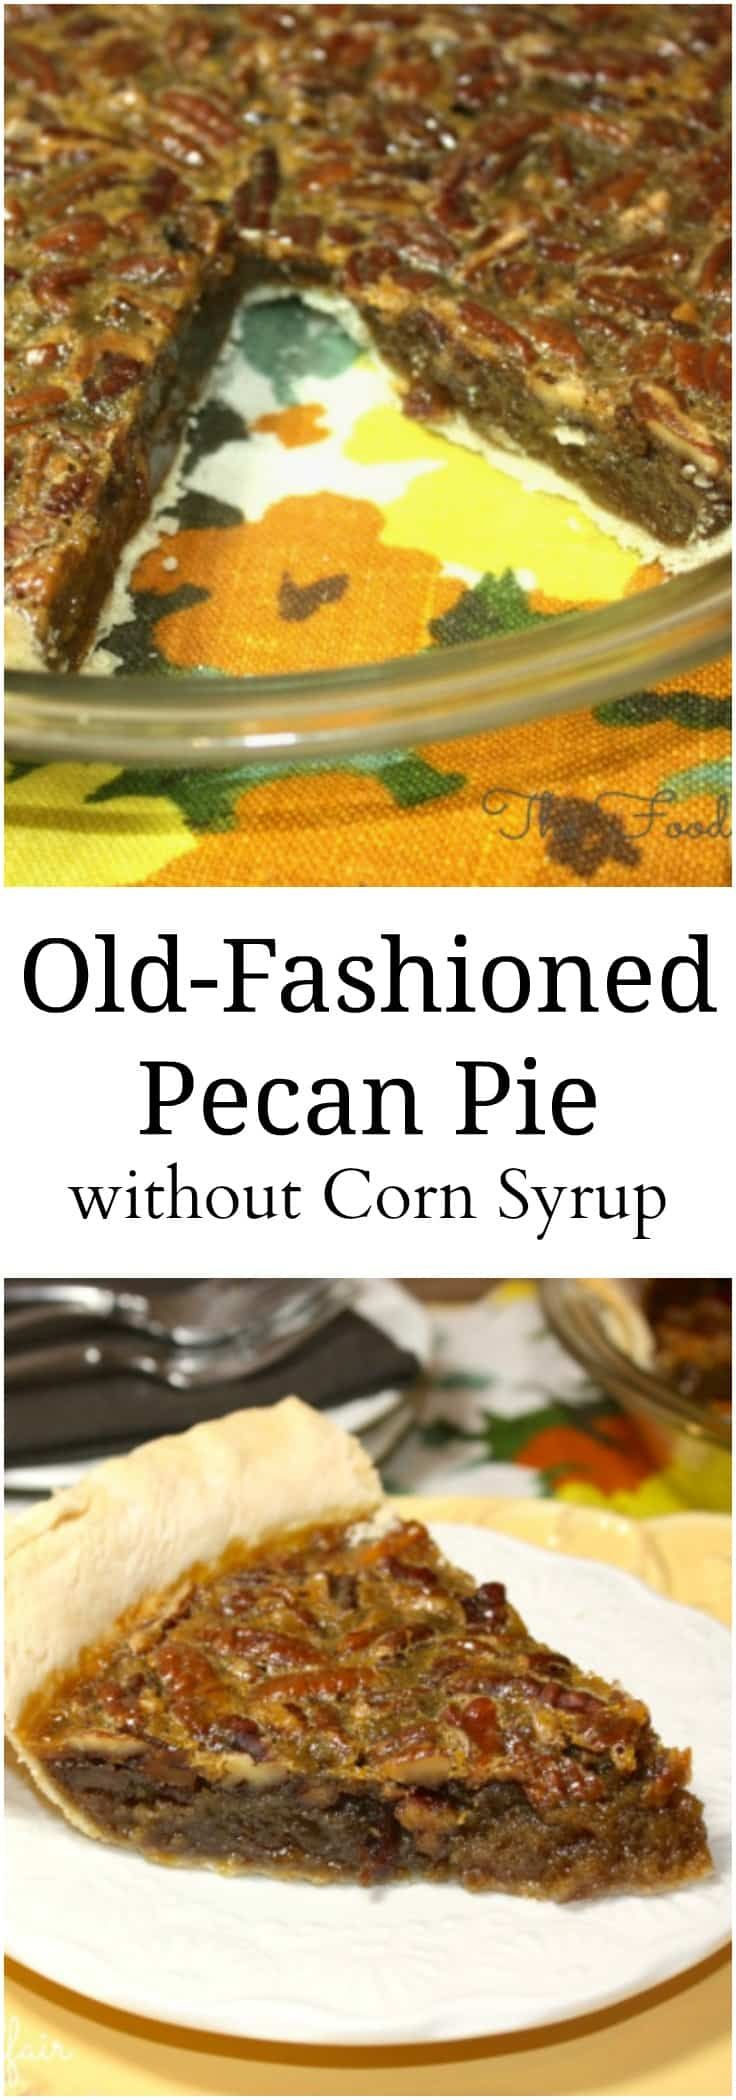 Old Fashioned Pecan Pie, delicious toasted pecans baked in a tasty filling that's flavorful without over-the-top sweetness! #PecanPie #OldFashioned #Recipe